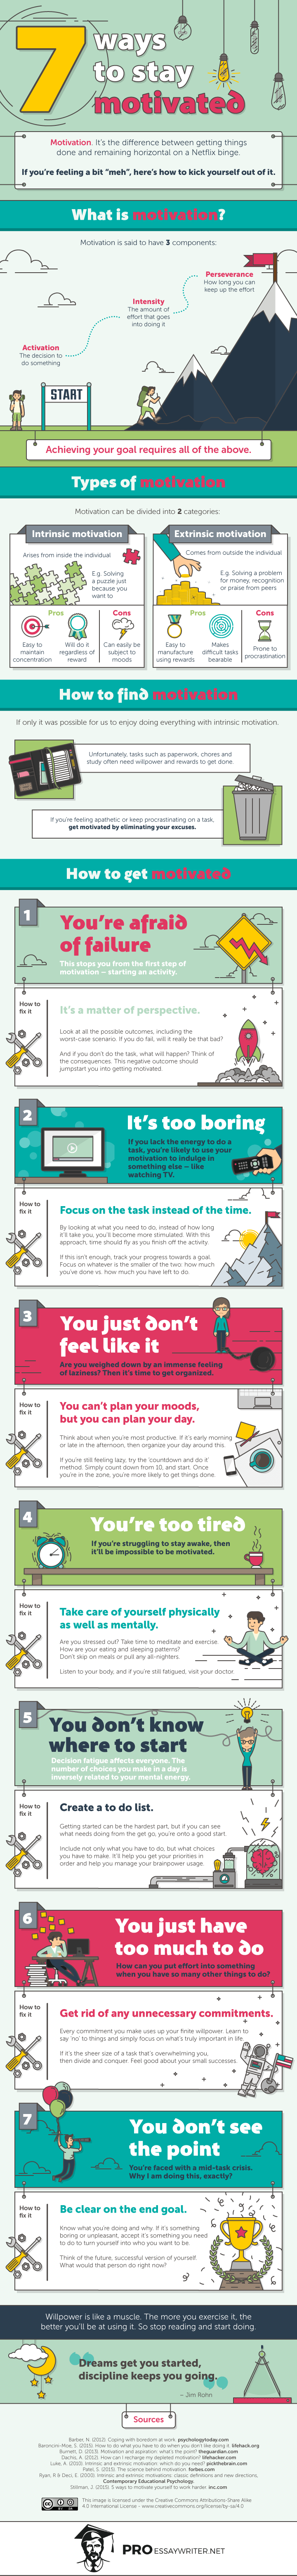 7-ways-to-stay-motivated-infographic